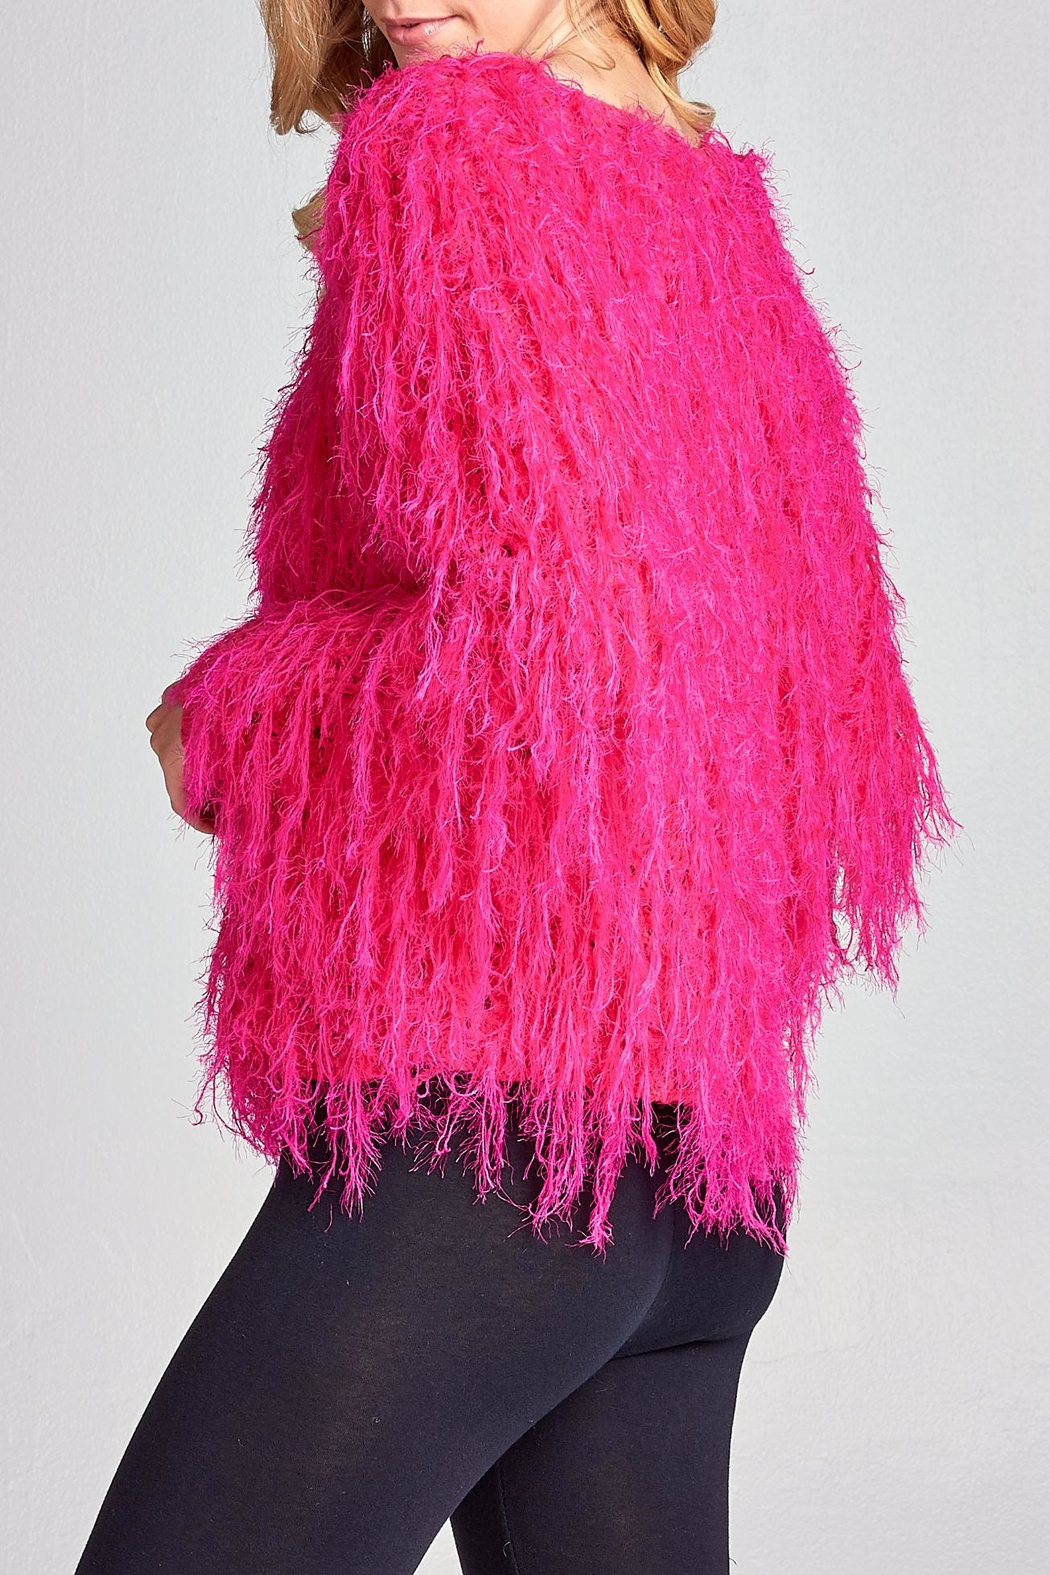 Racine Pink Fur Sweater - Side Cropped Image